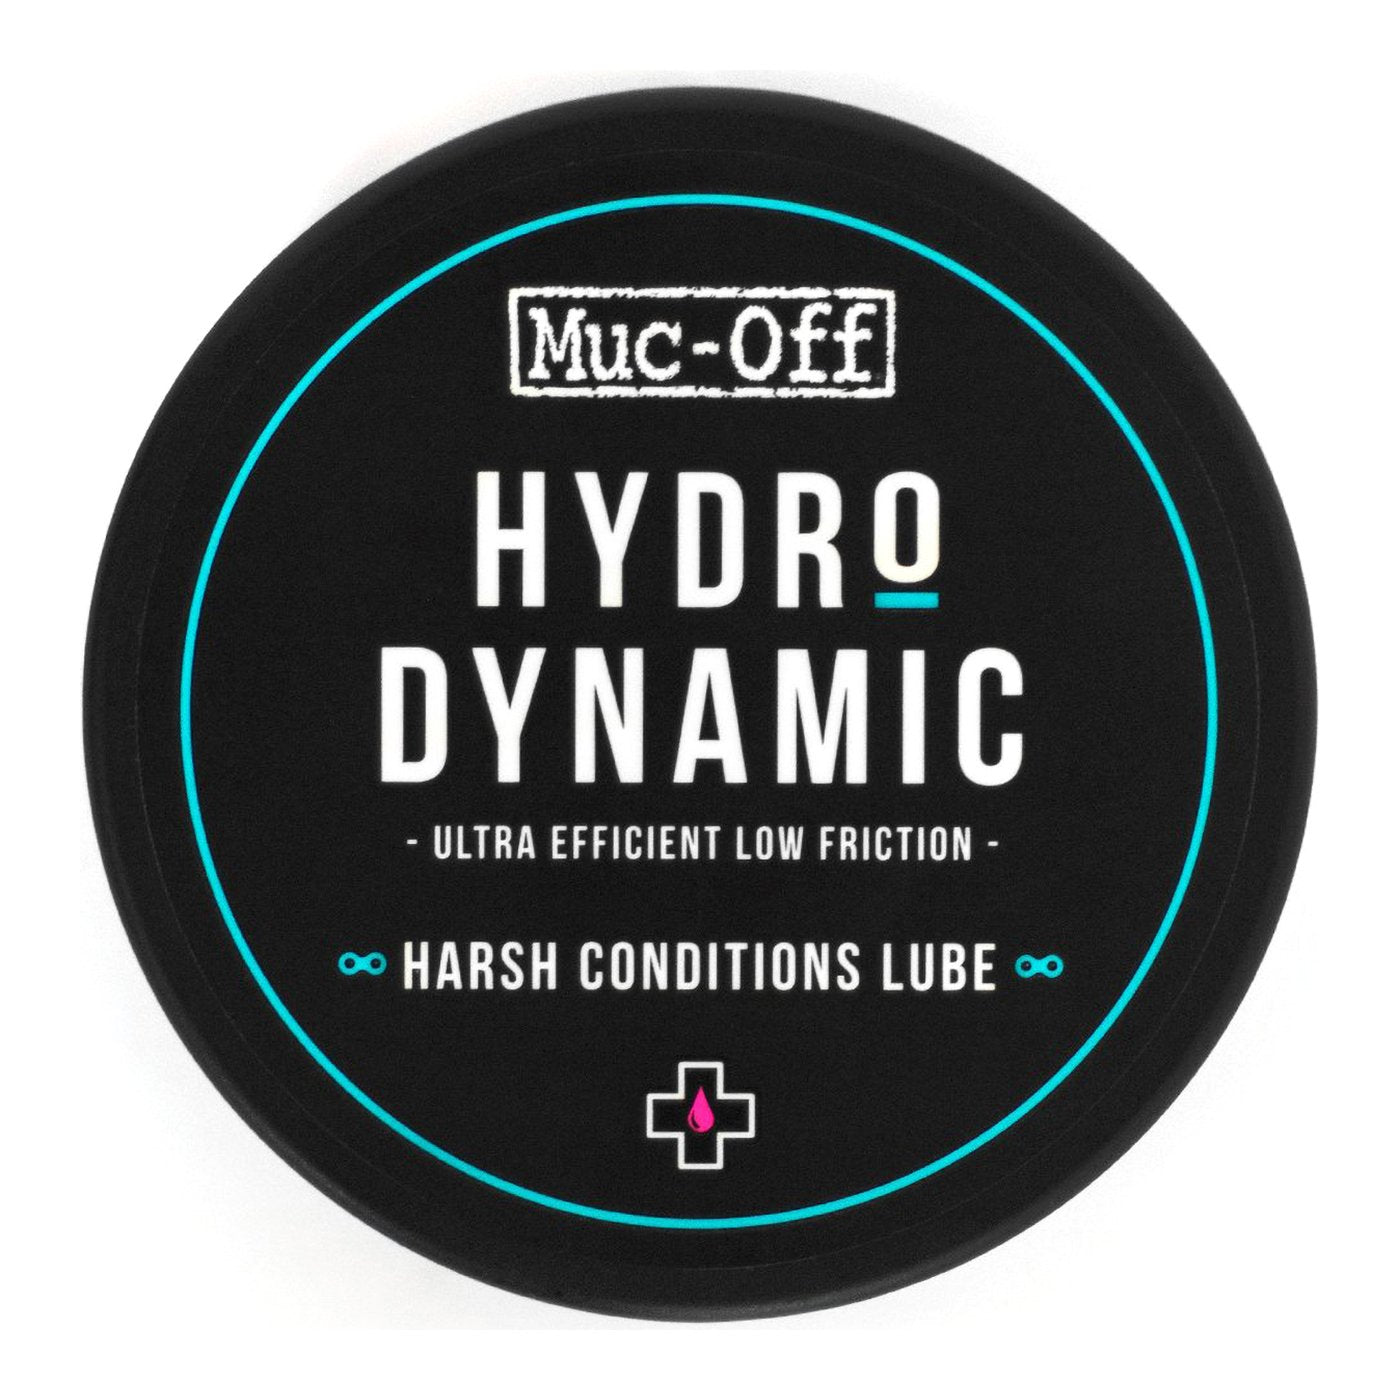 Harsh Conditions Lube - Muc-Off